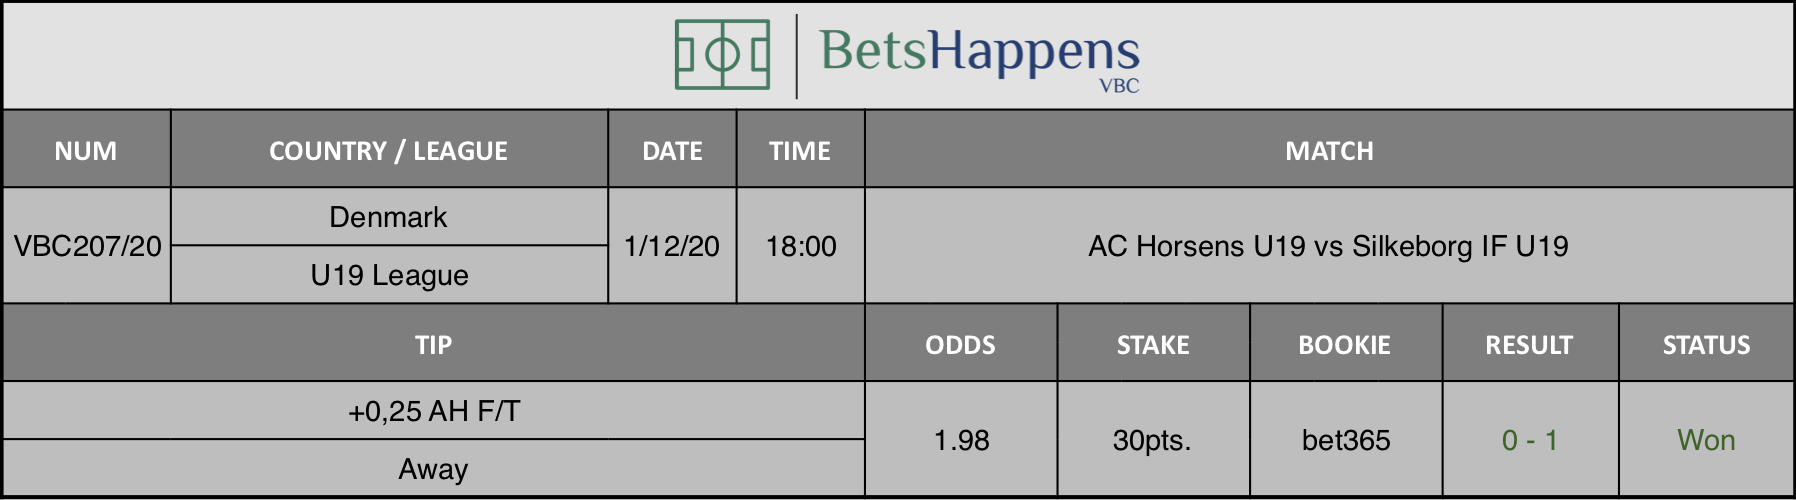 Results of our tip for the AC Horsens U19 vs Silkeborg IF U19 match where +0,25 AH F/T Away is recommended.